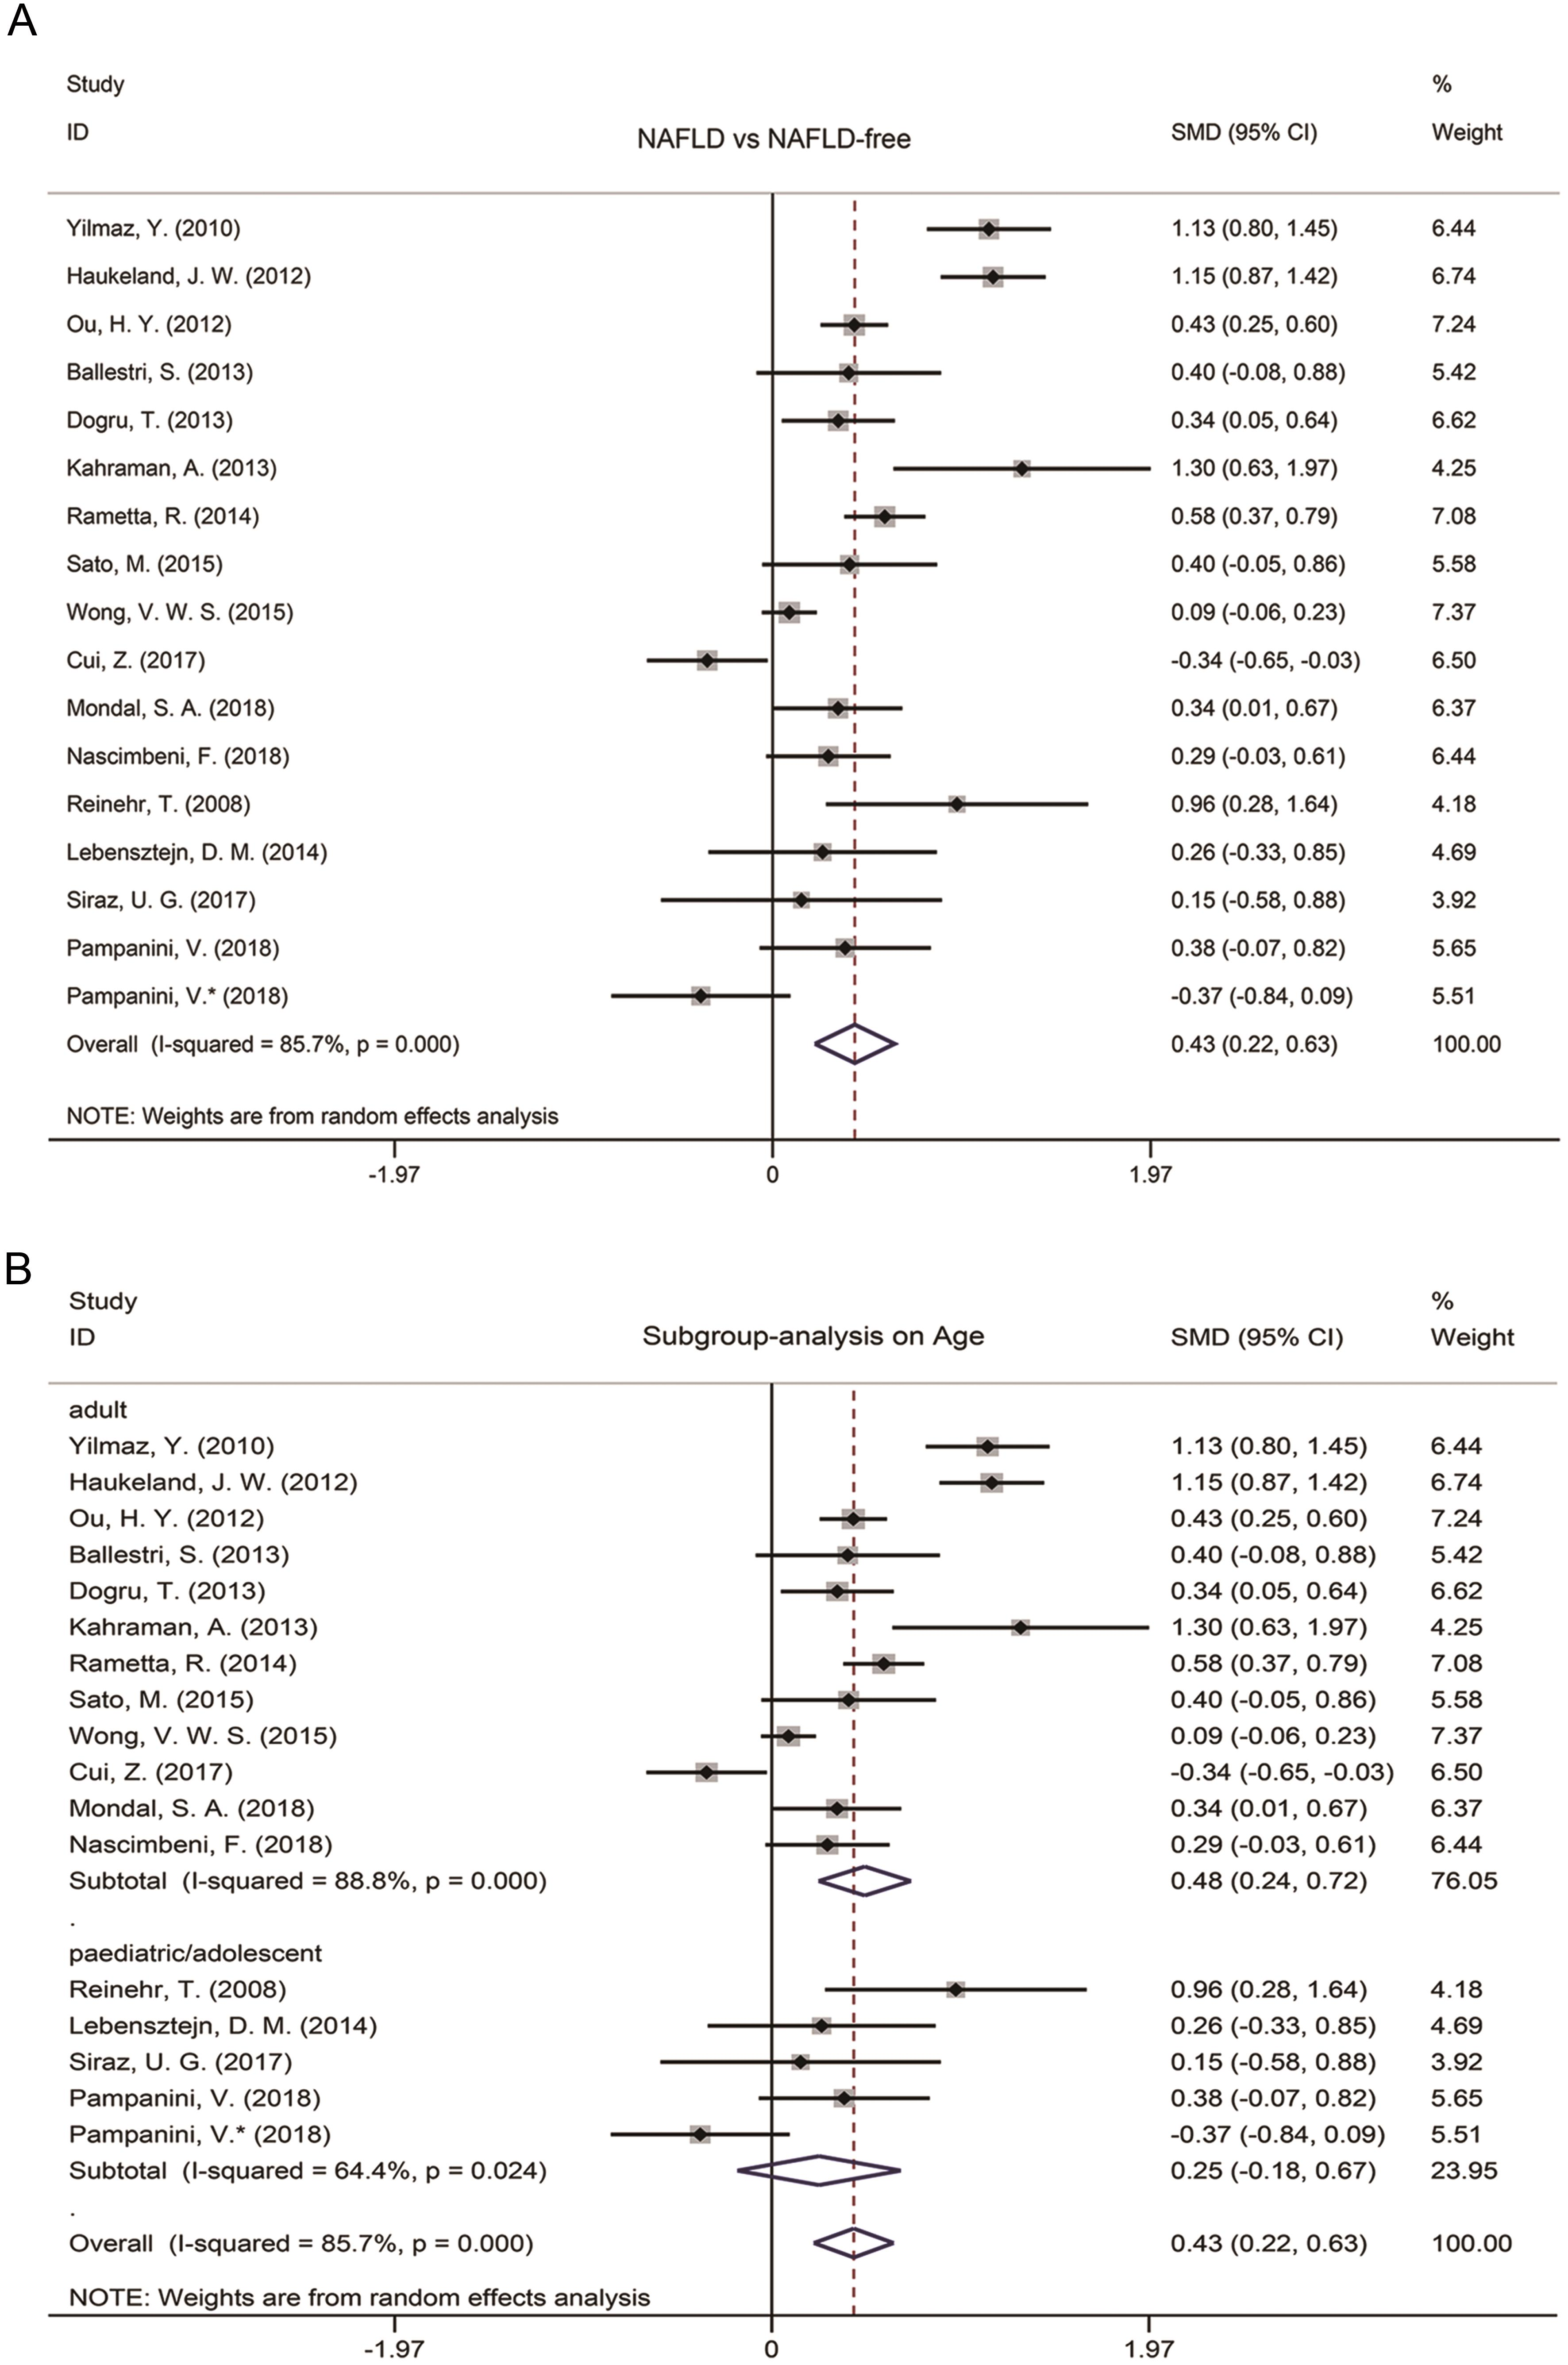 Meta-analysis and influence of age.